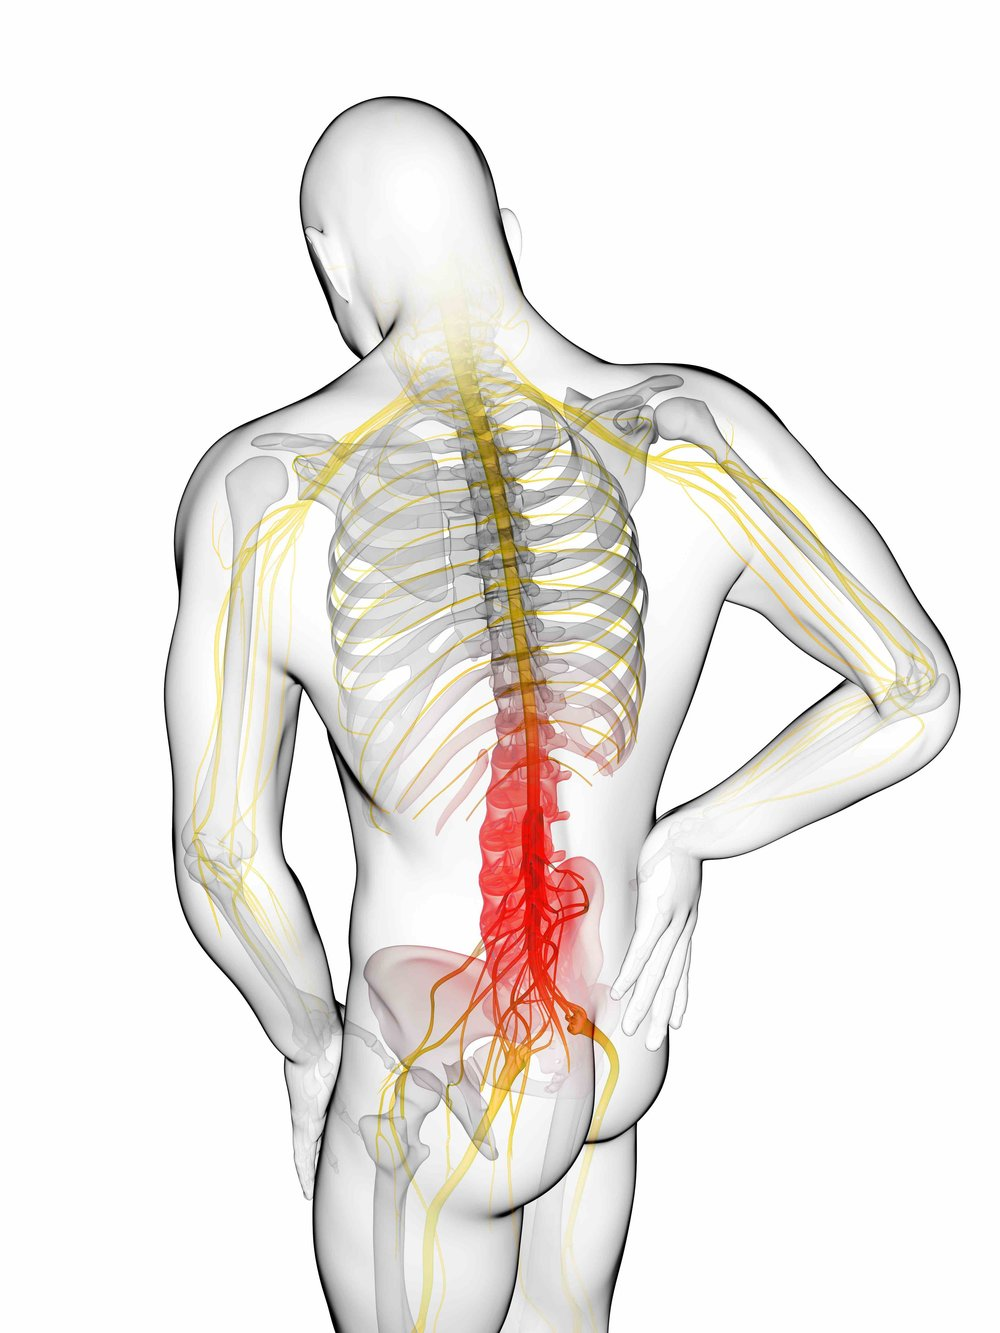 - The following symptoms are commonly seen in Herniated Disc Disease- Lower back or neck pain- Pain or weakness in various parts of the arms, shoulders, leg and buttocks.-